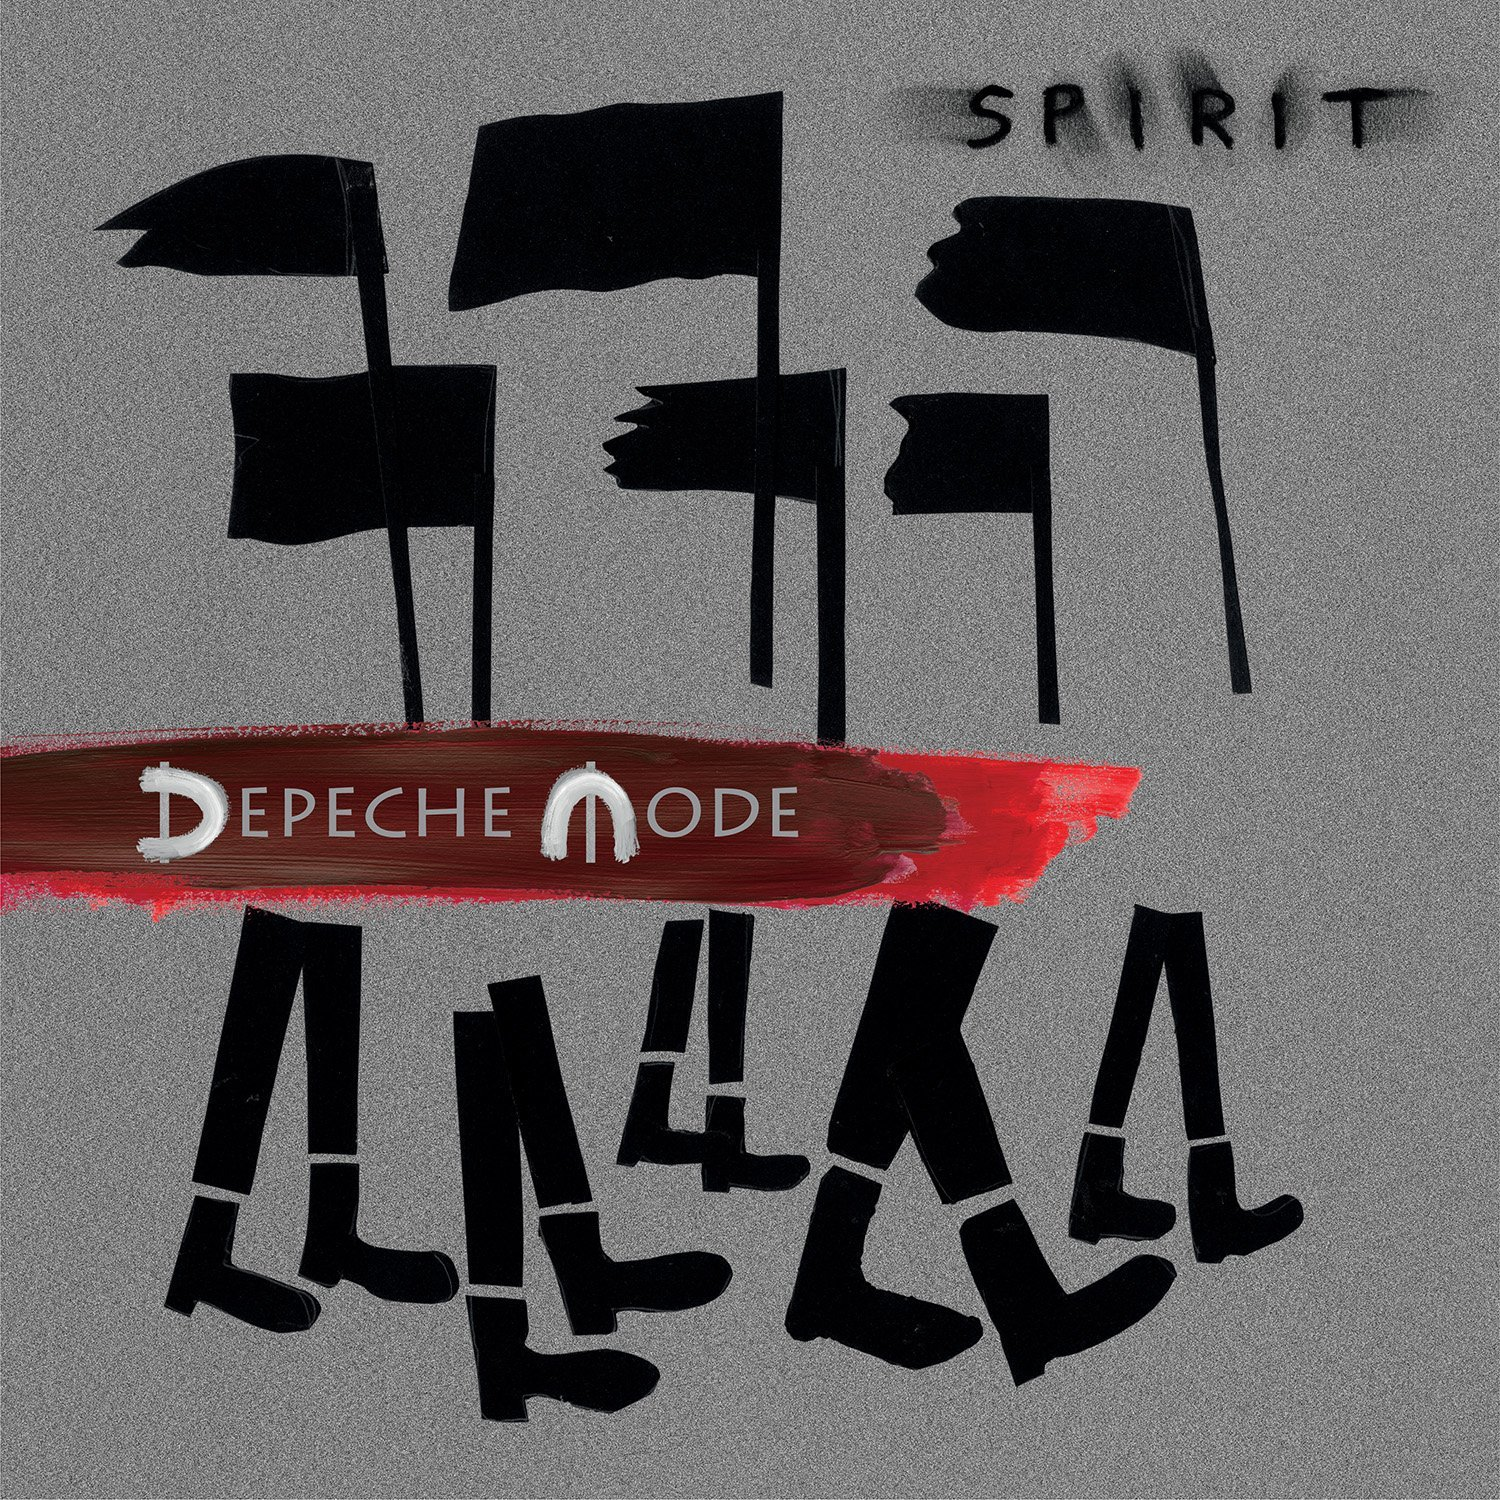 Depeche Mode / new album Spirit